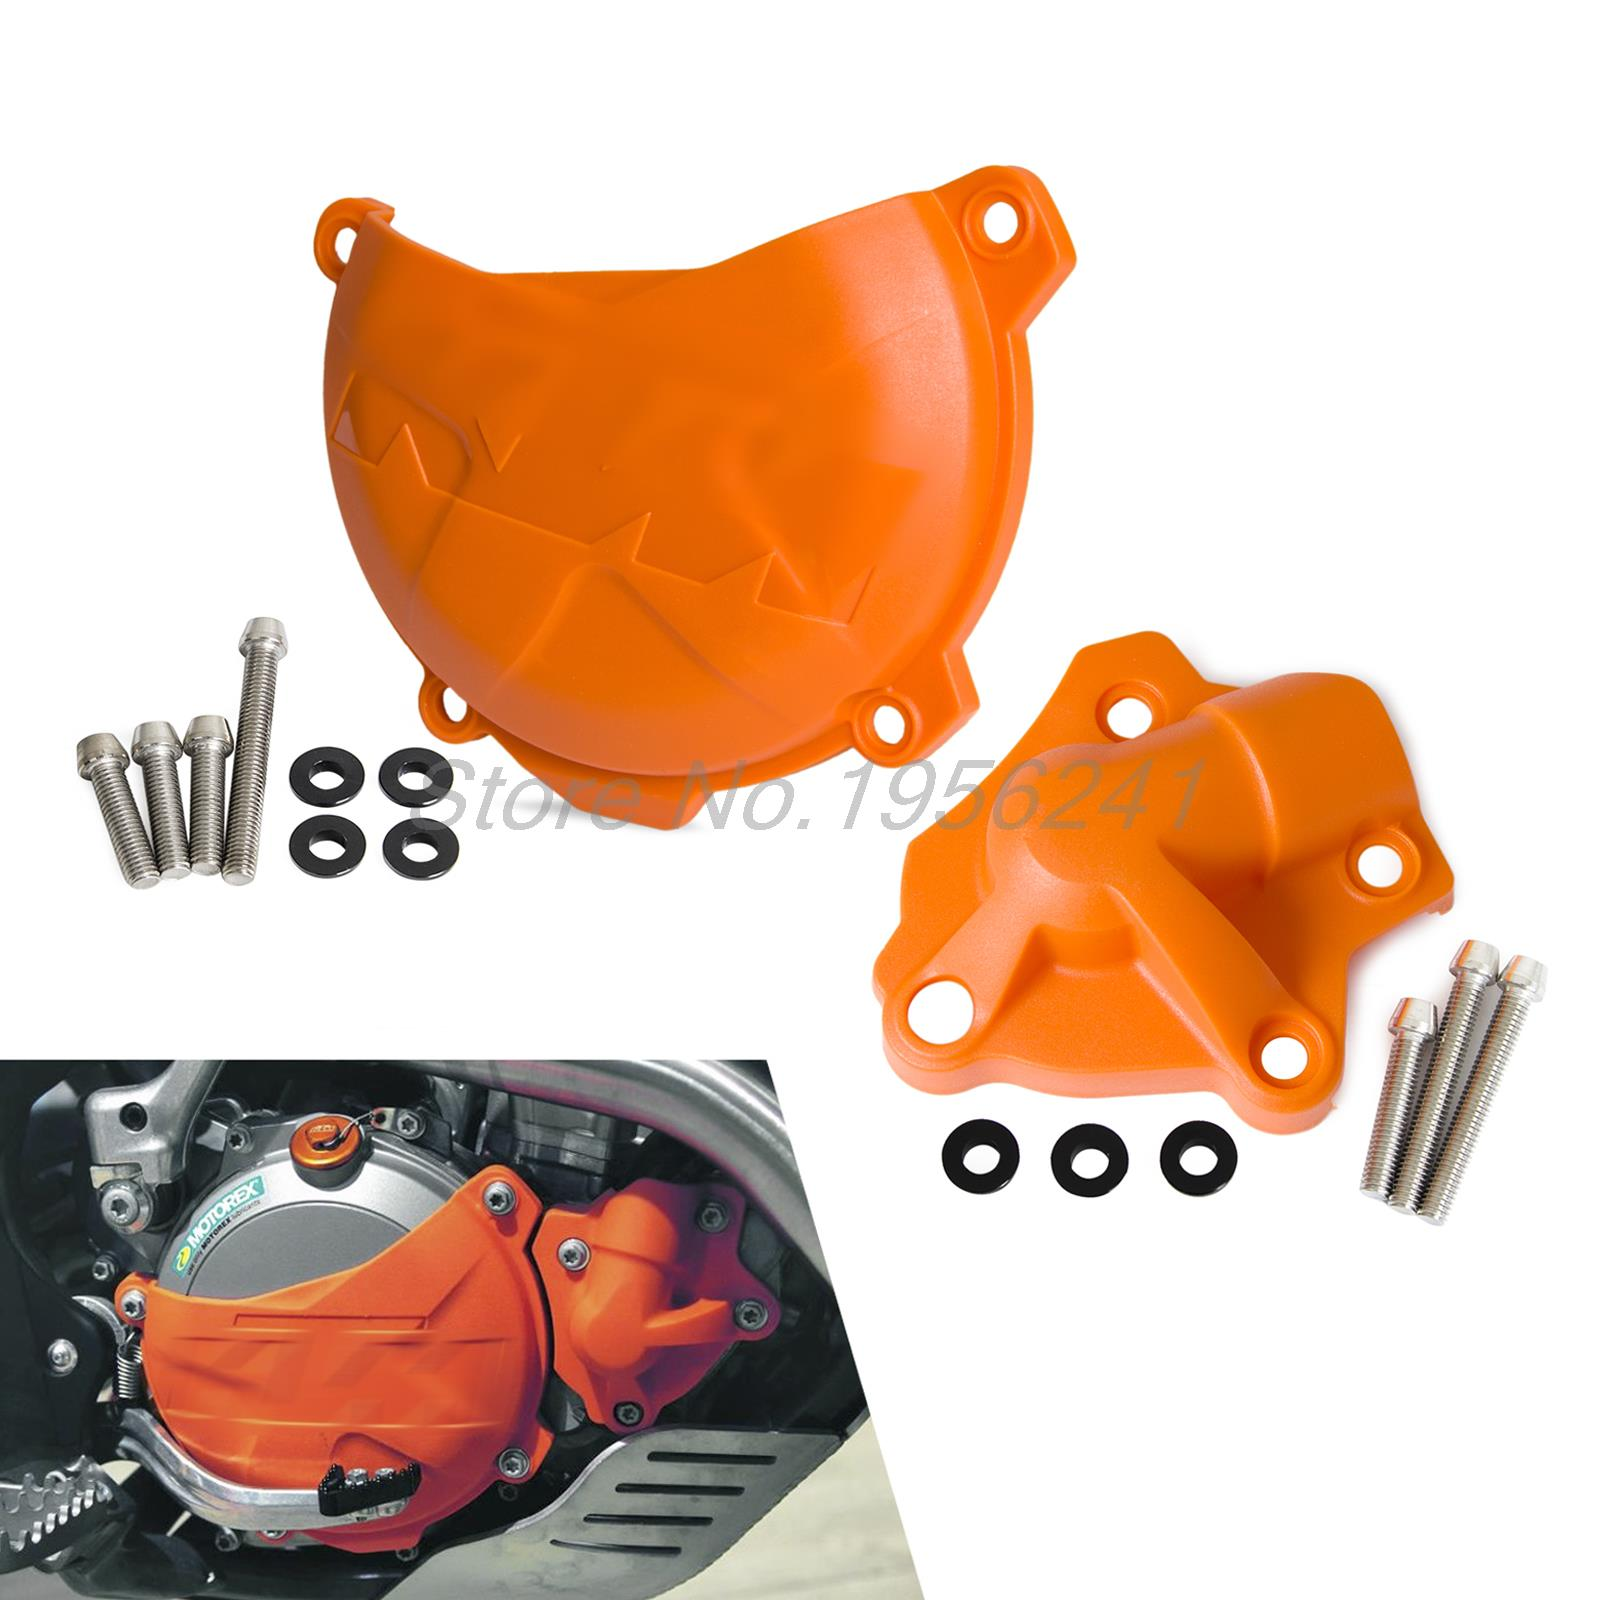 Clutch Cover/Water Pump Cover Protector for KTM 250 350 SXF SX-F XCF XC-F EXC-F EXCF SIX DAYS XCF-W XCFW FREERIDE orange cnc billet factory oil filter cover for ktm sx exc xc f xcf w 250 400 450 520 525 540 950 990